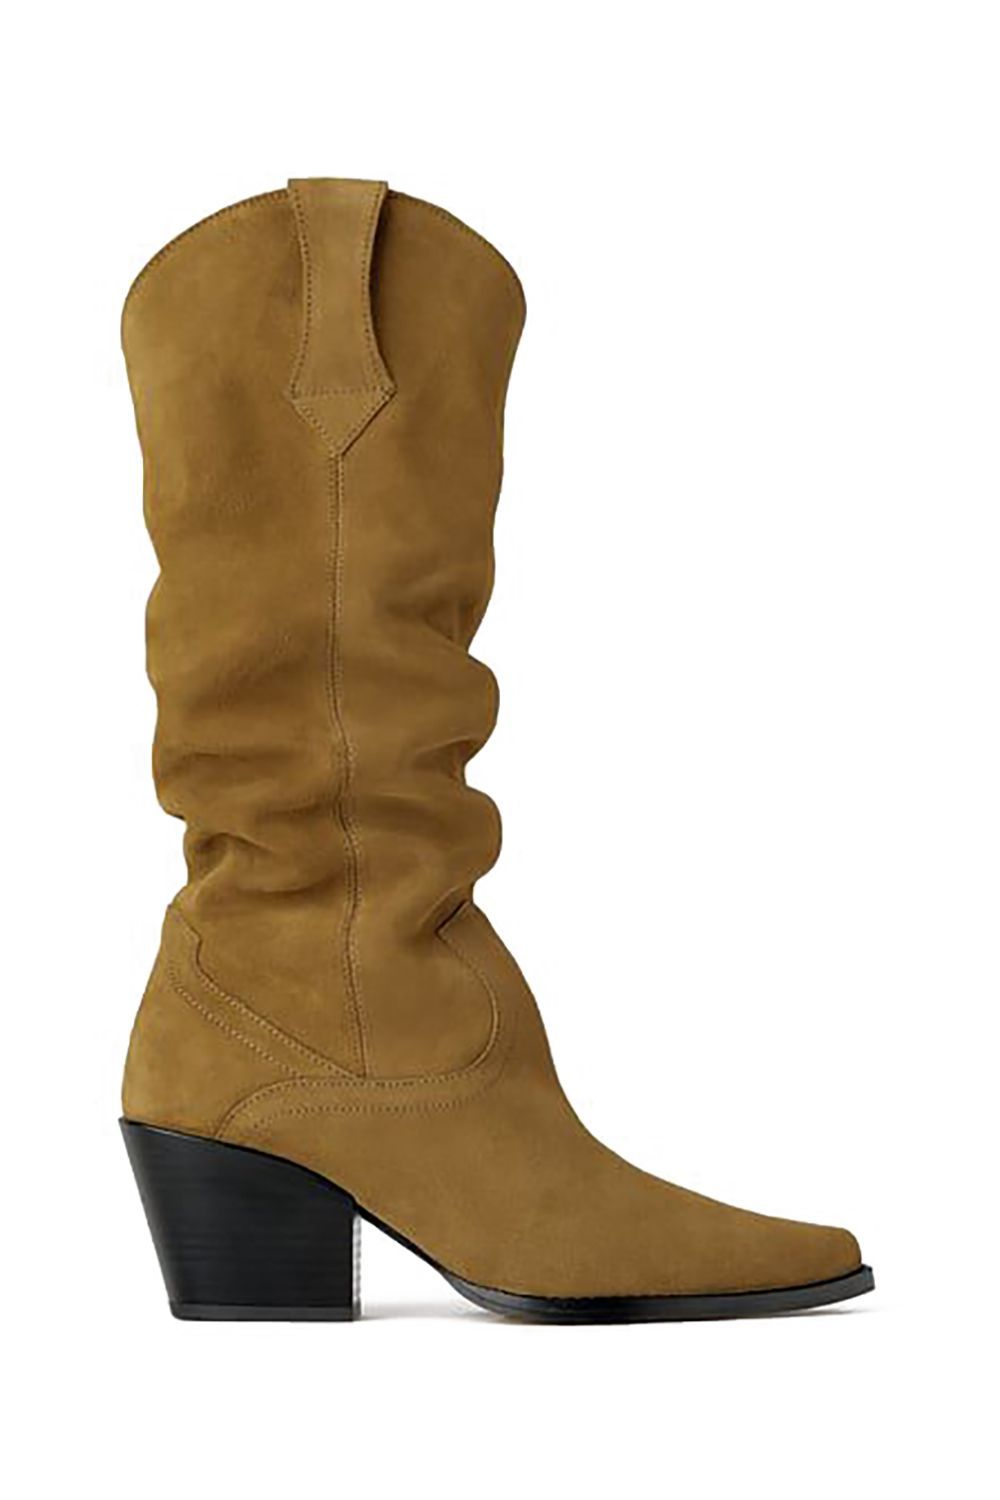 Suede Slouchy Boots Zara zara.com $149.00 SHOP IT Per the Instagram feeds of Eva Chen and Gigi Hadid , slouchy boots are having a big moment right now. Here, a neutral option for those looking to lean into the trend.